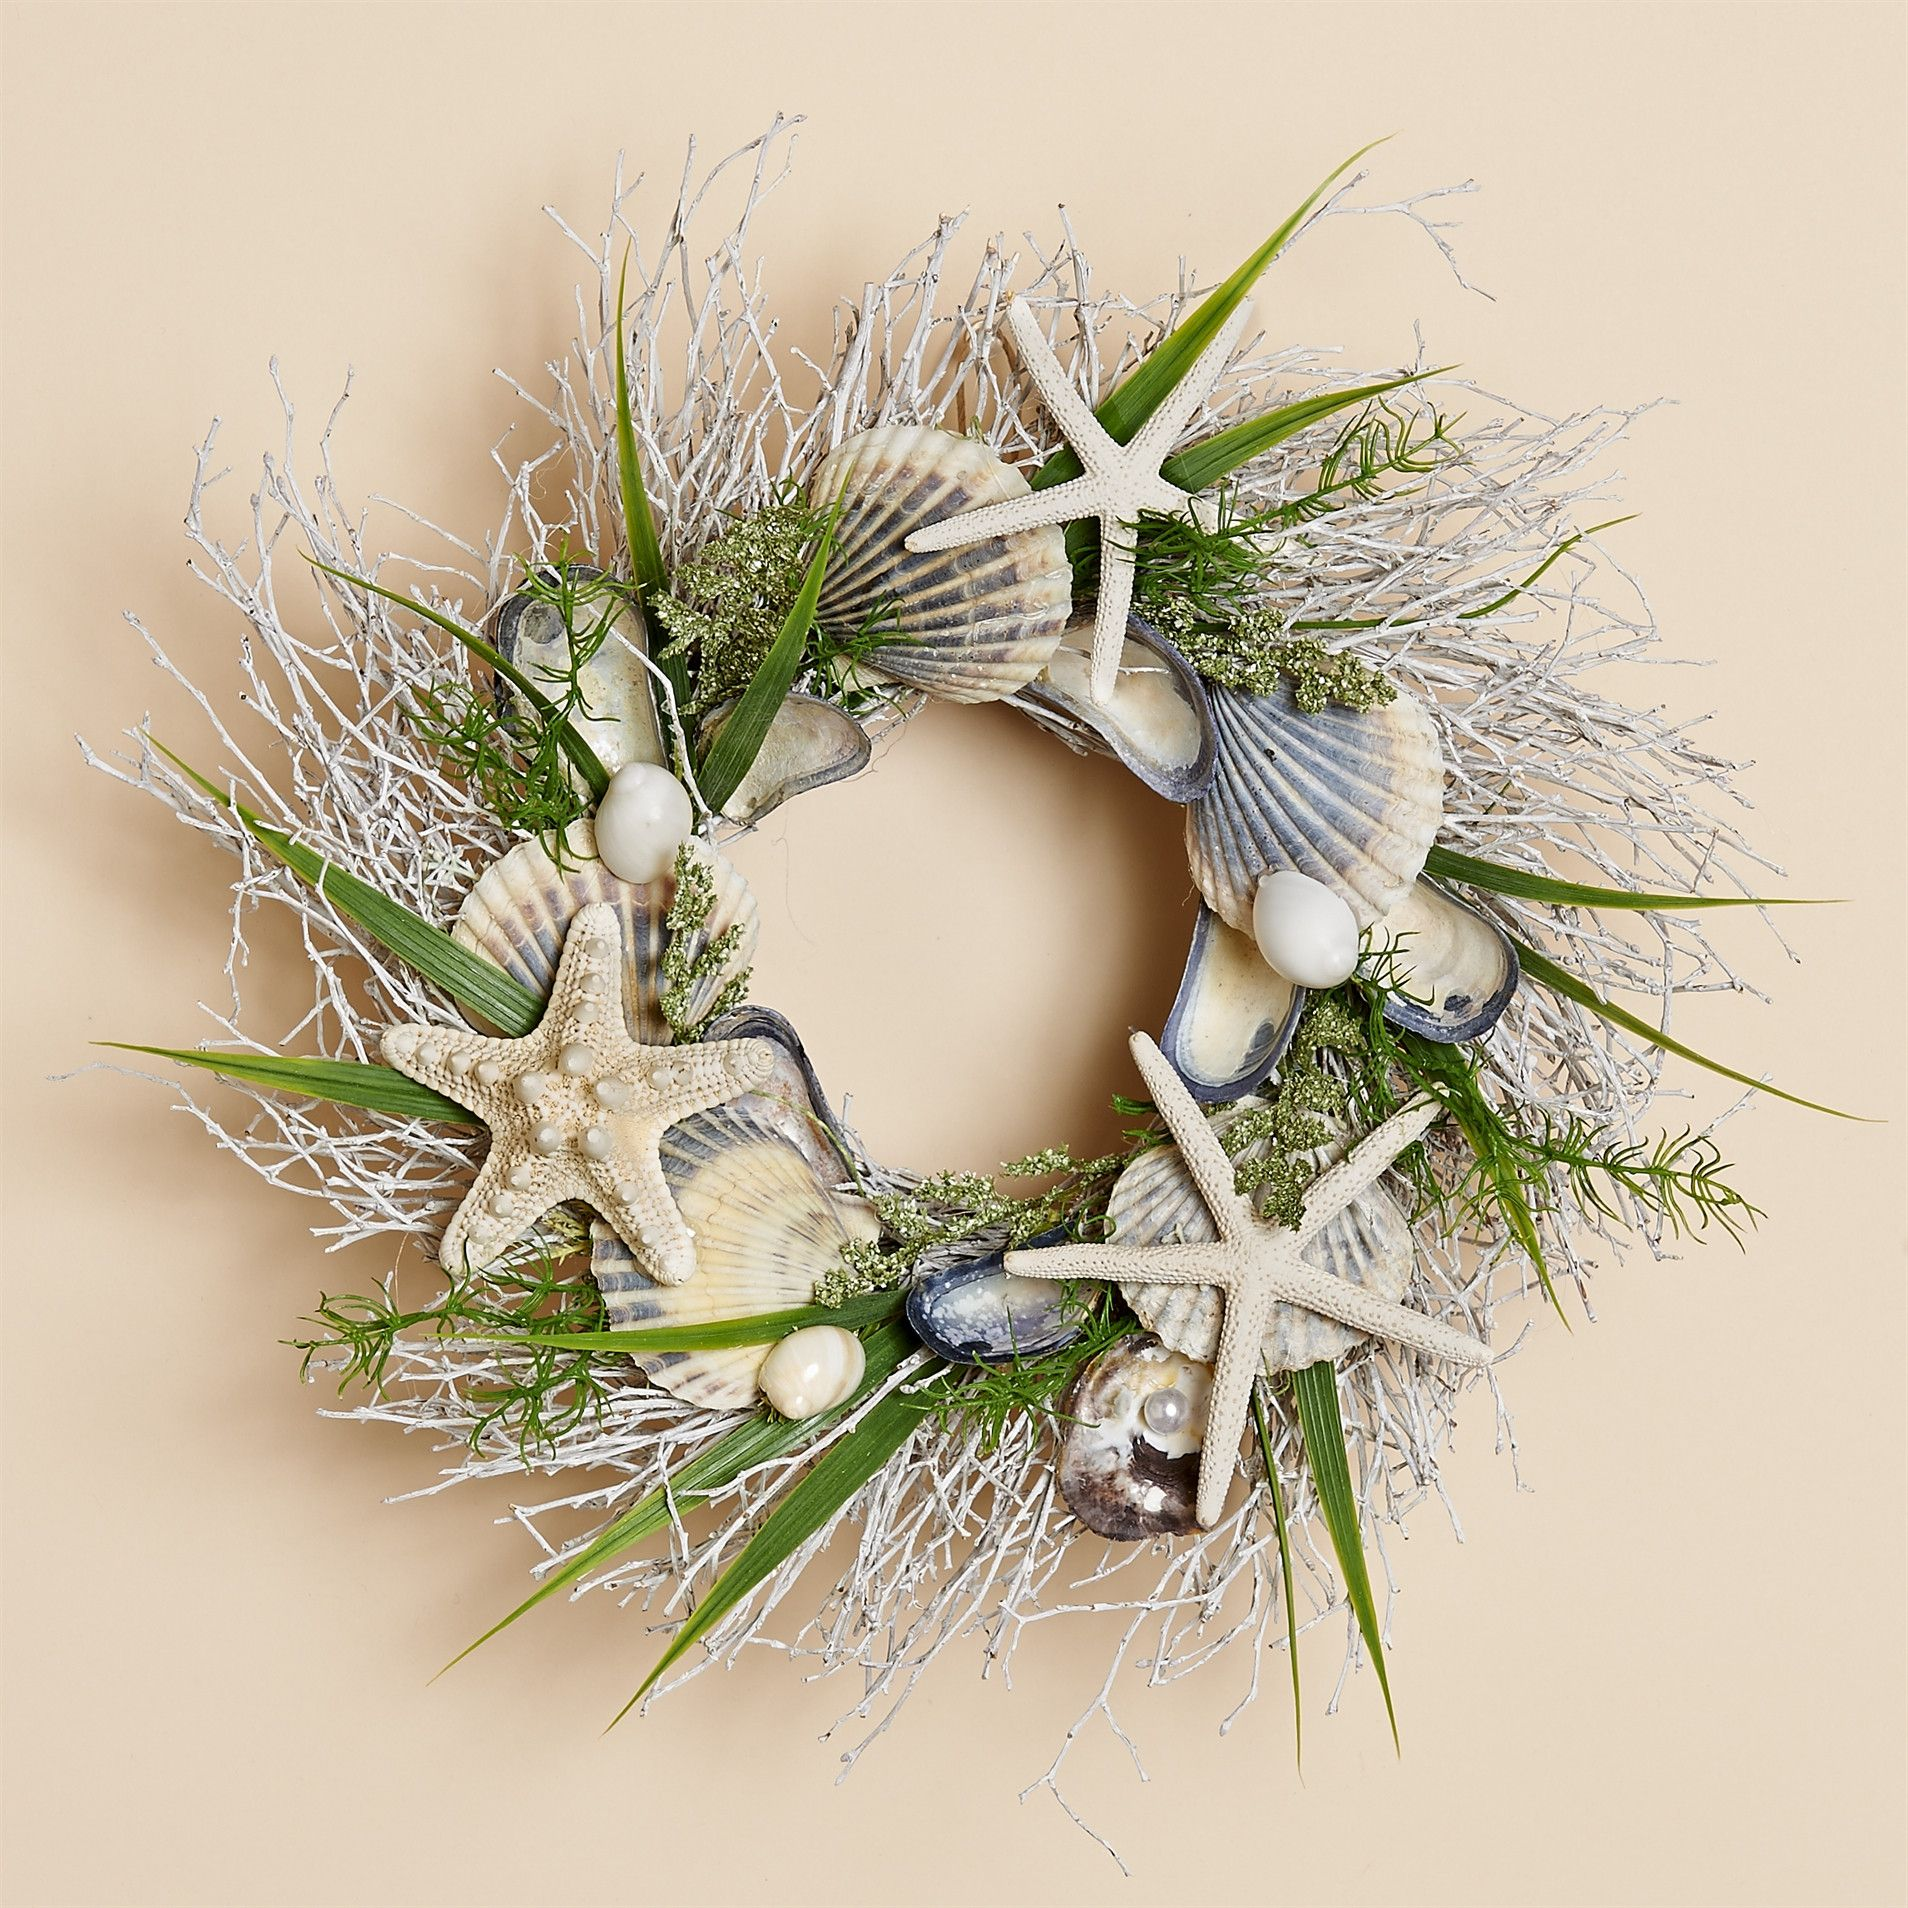 14 Inch White Twig Wreath With Native Scallop Shells